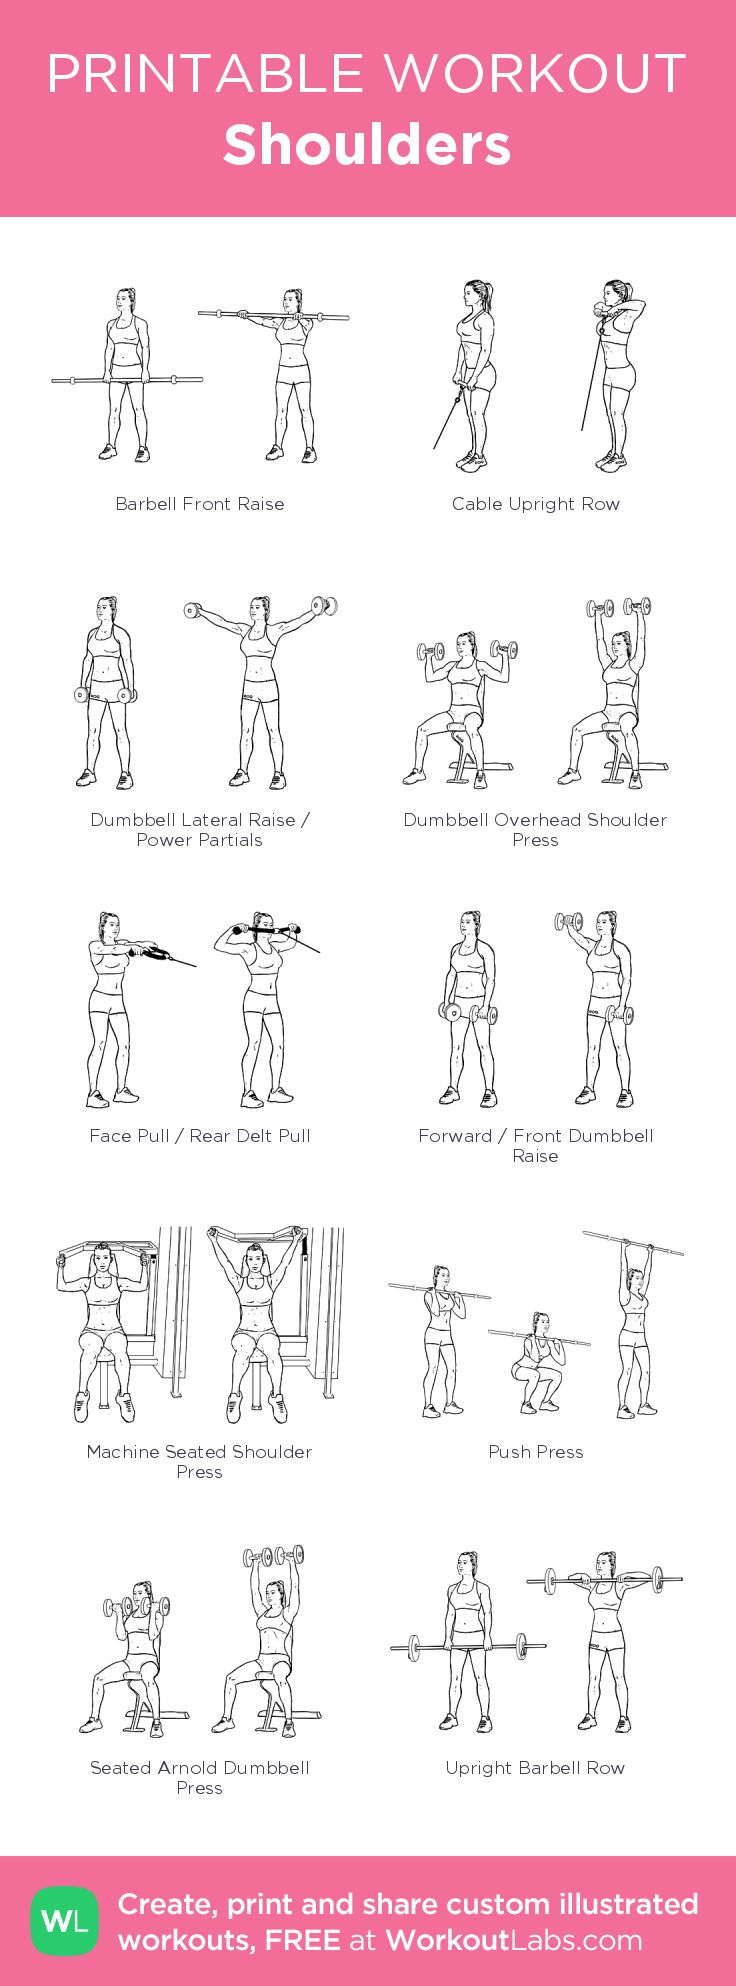 Shoulders: my visual workout created at WorkoutLabs.com • Click through to customize and download as a FREE PDF! #customworkout